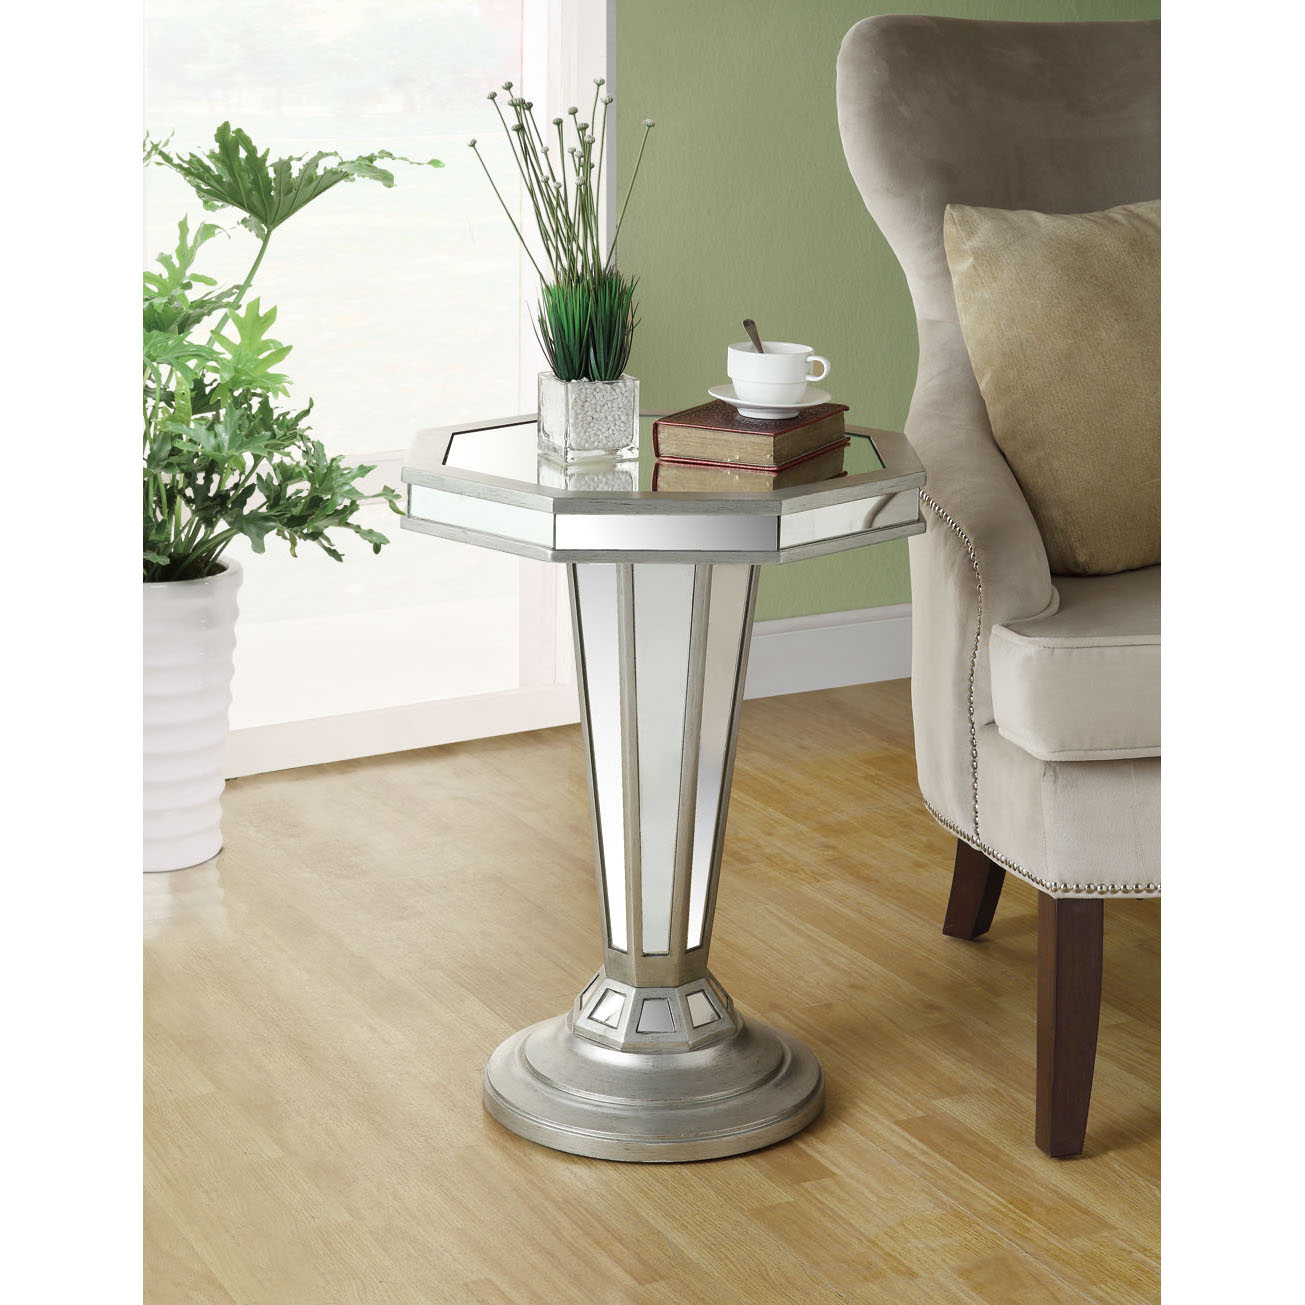 mirrored accent table with drawer collection inch octagon shape pedestal free west elm shipping coupon code wicker patio furniture sets rattan and chairs marble living room